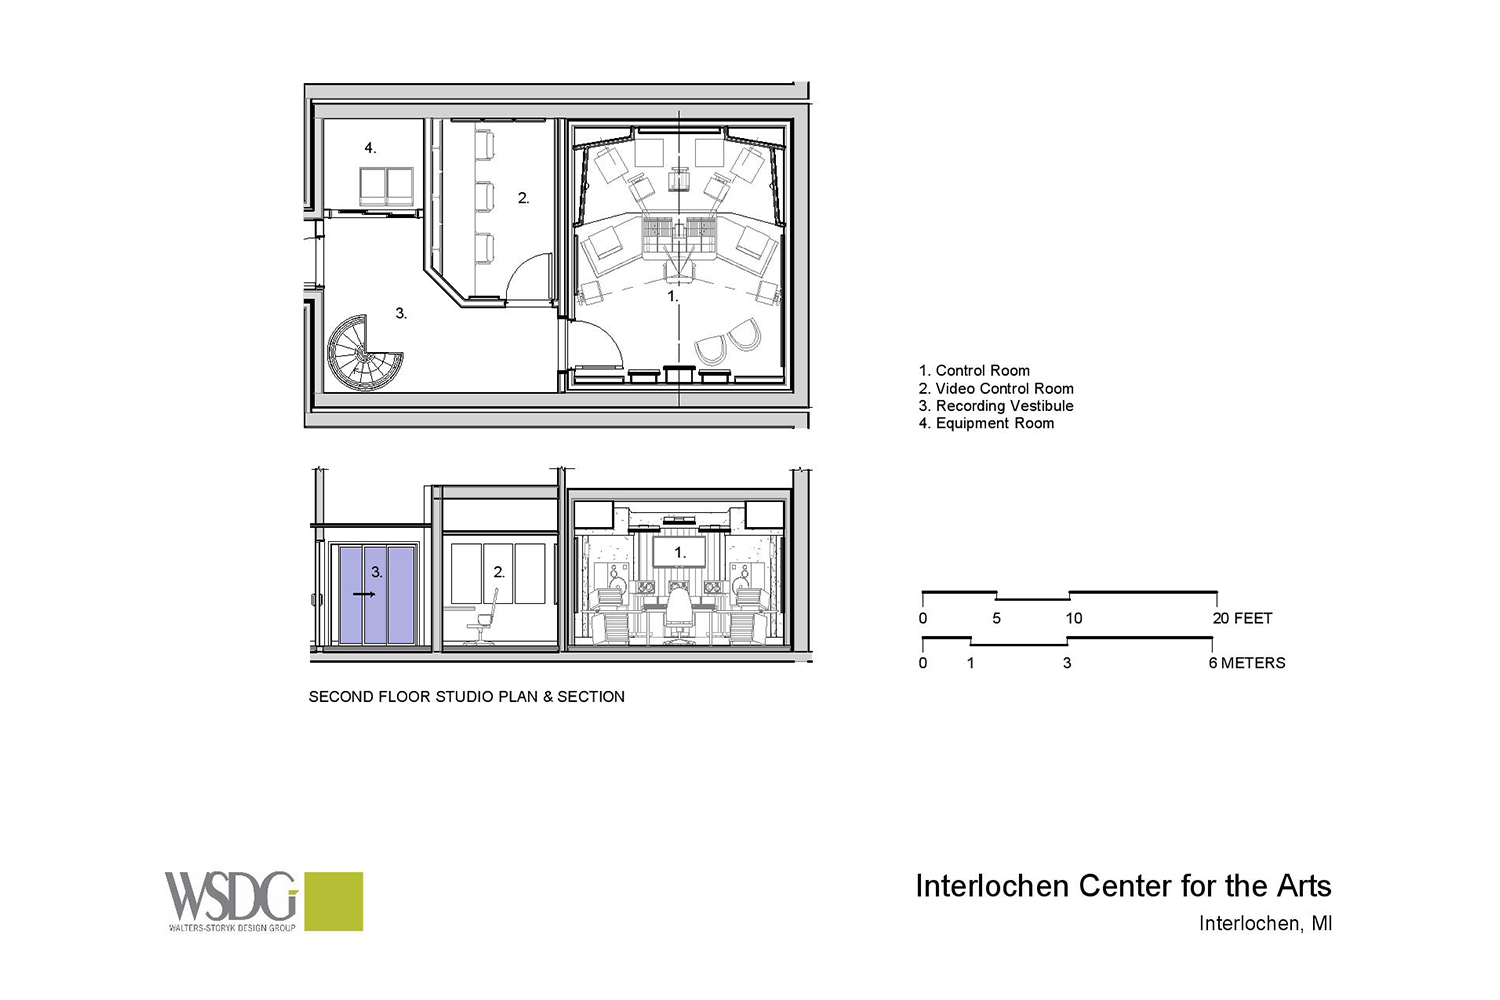 Interlochen has recently completed their new complex. A key component of the new complex is a state-of-the-art recording/teaching studio complex developed by WSDG. Presentation drawing 2, second floor.